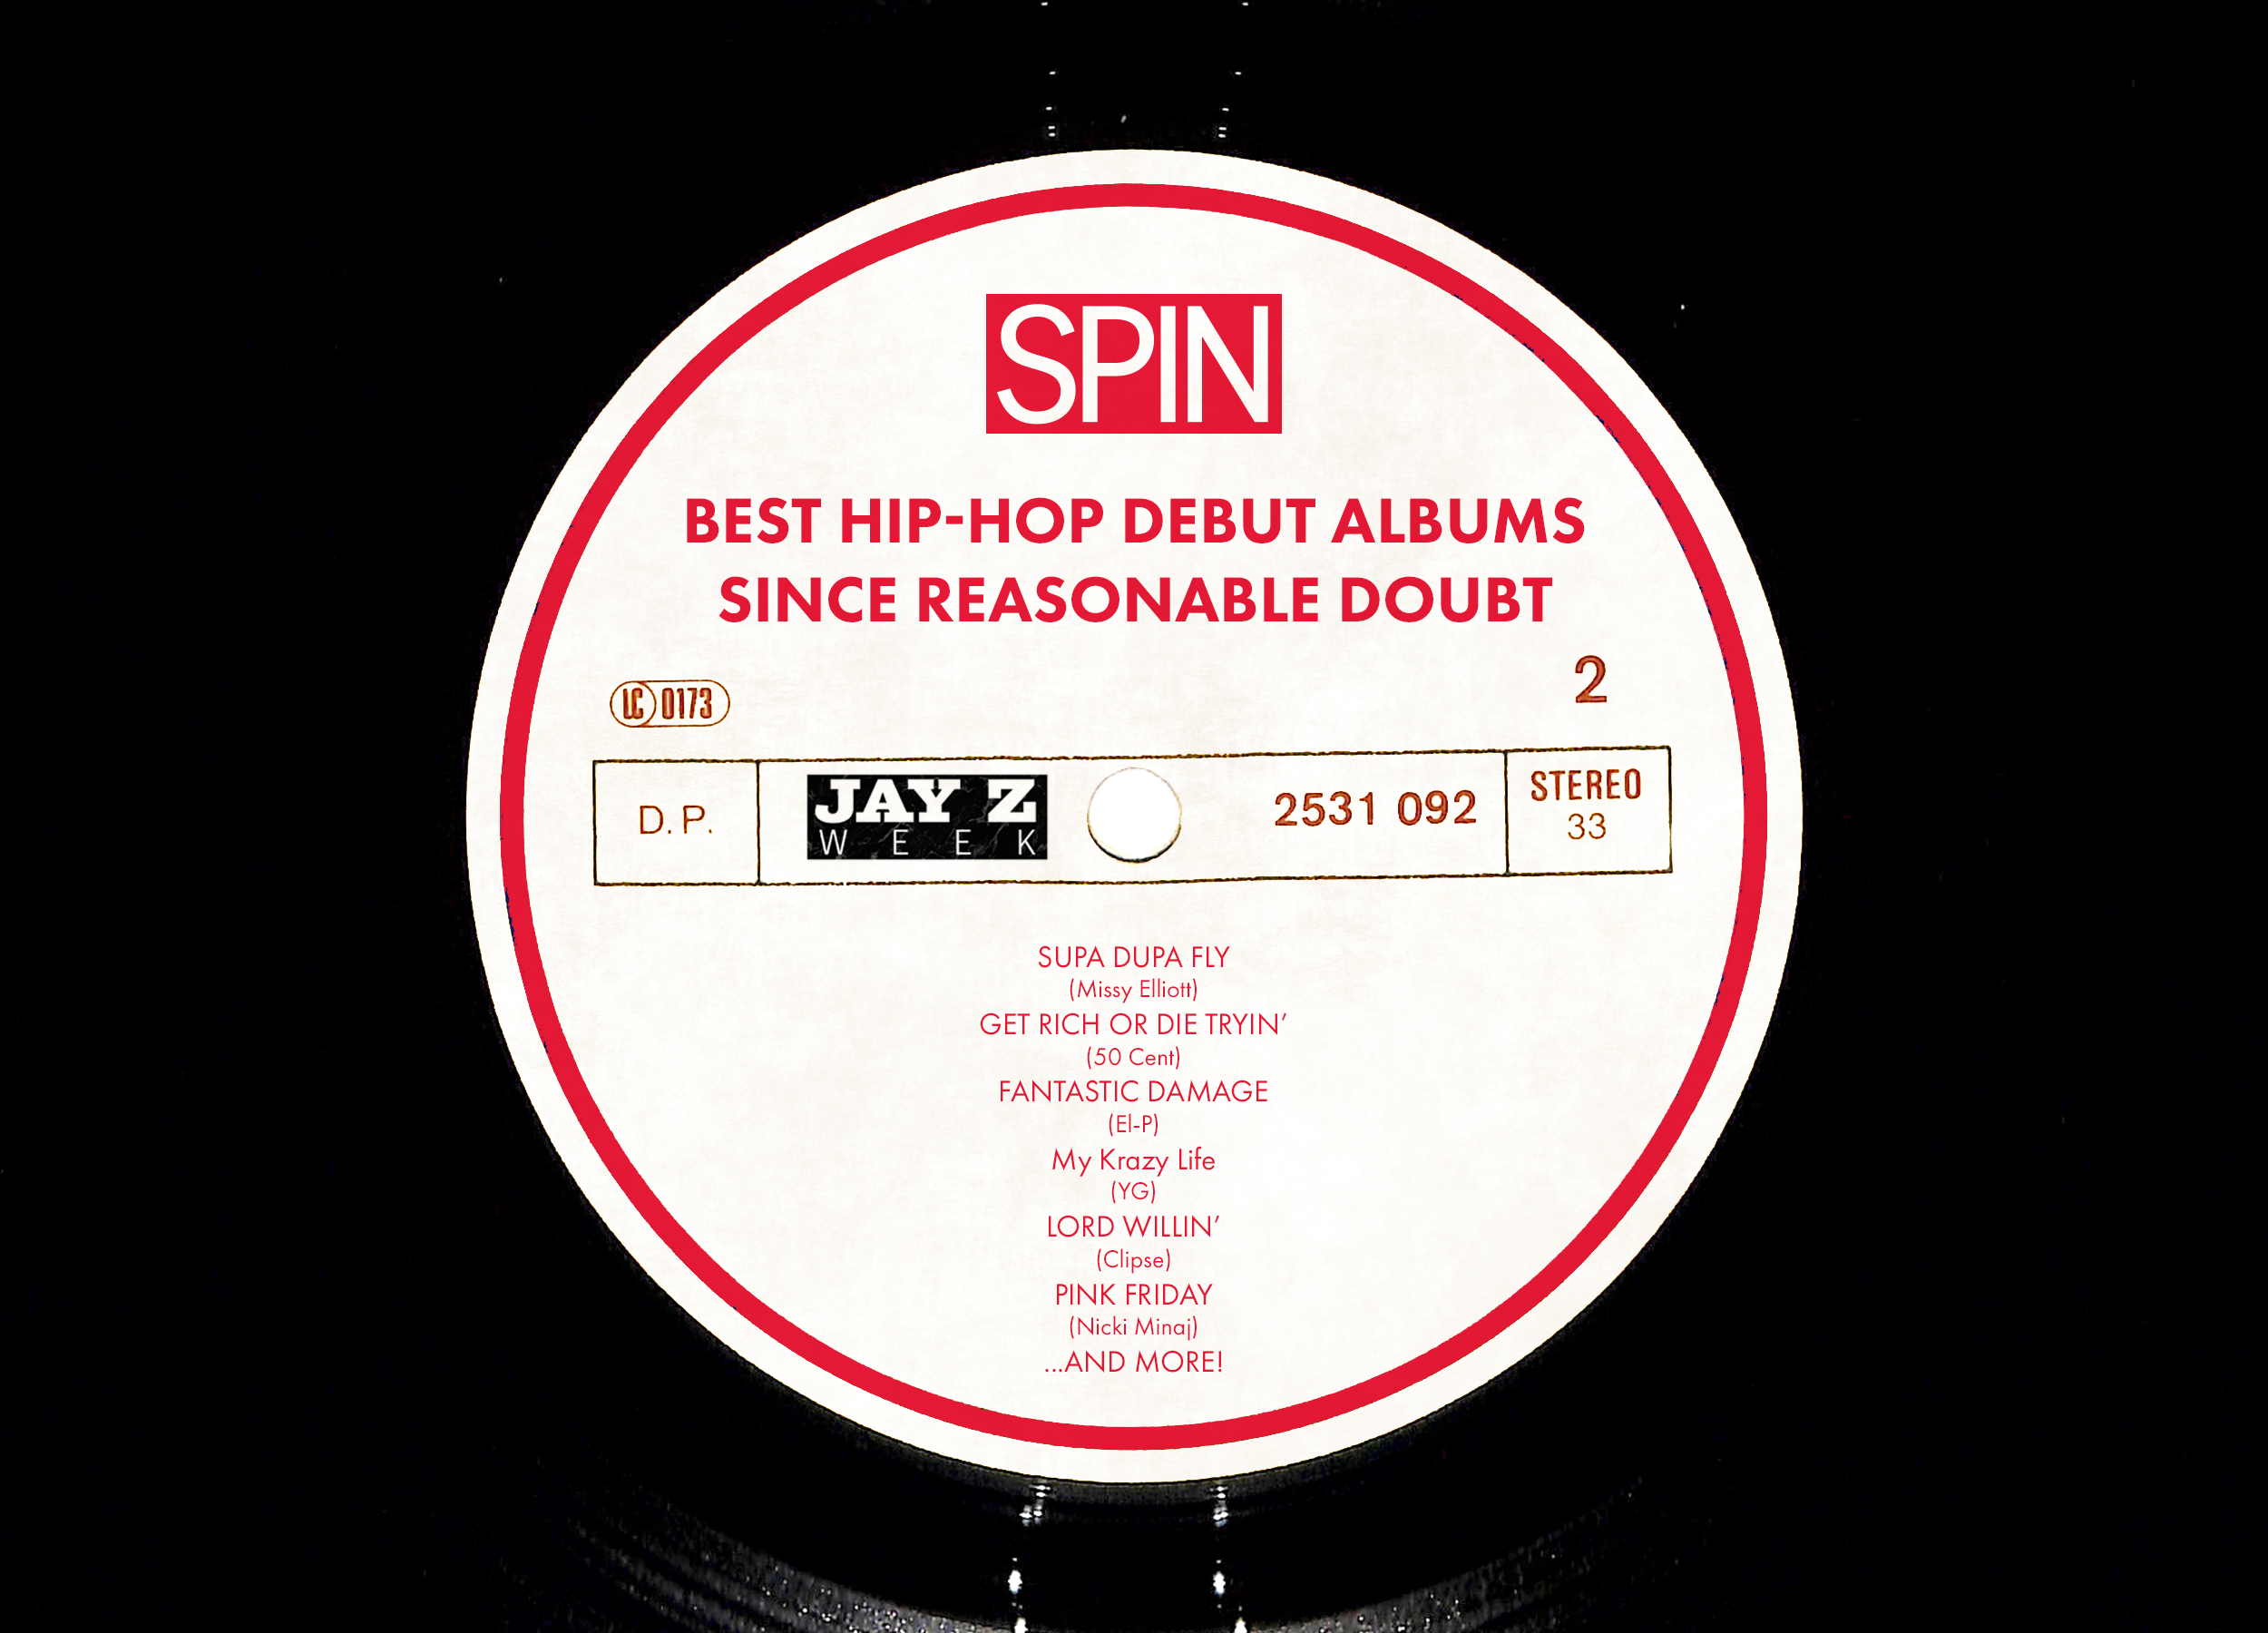 The 50 Best Hip-Hop Debut Albums Since 'Reasonable Doubt'